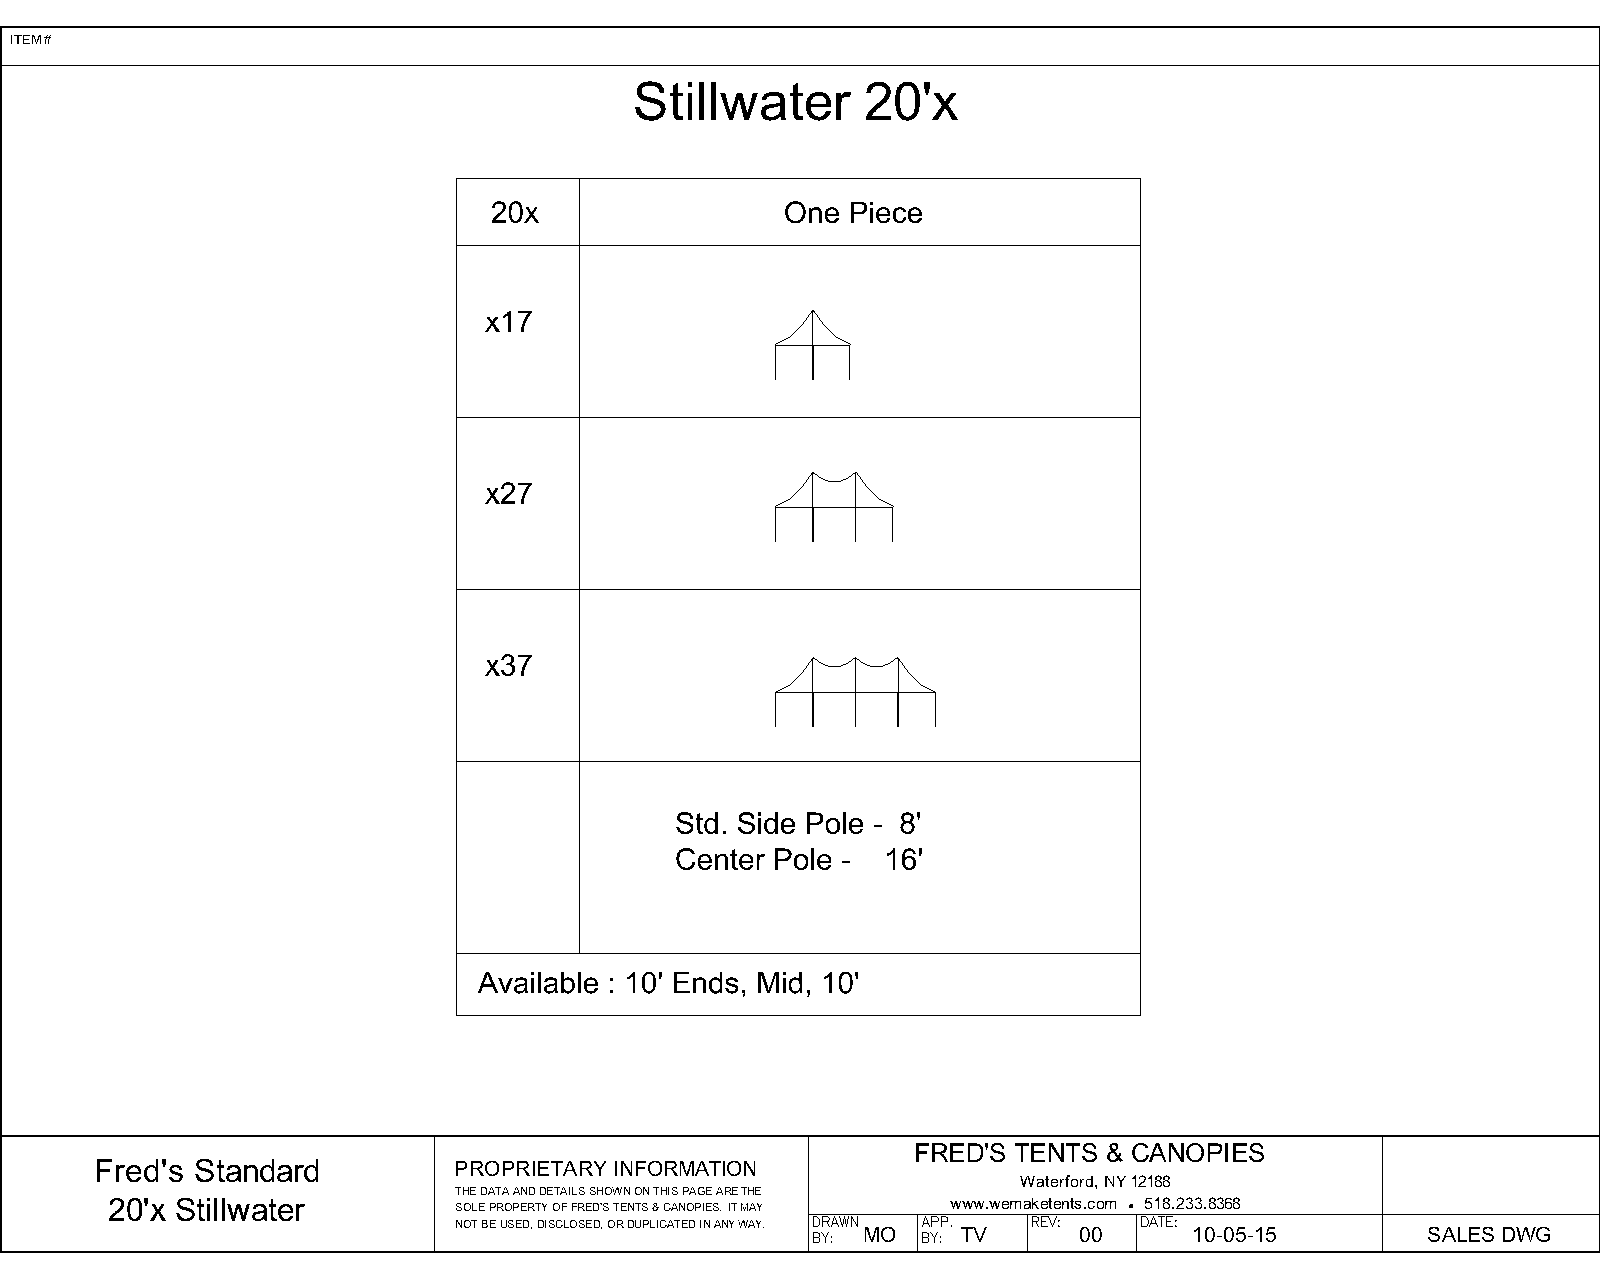 Stillwater Tent Size Diagram